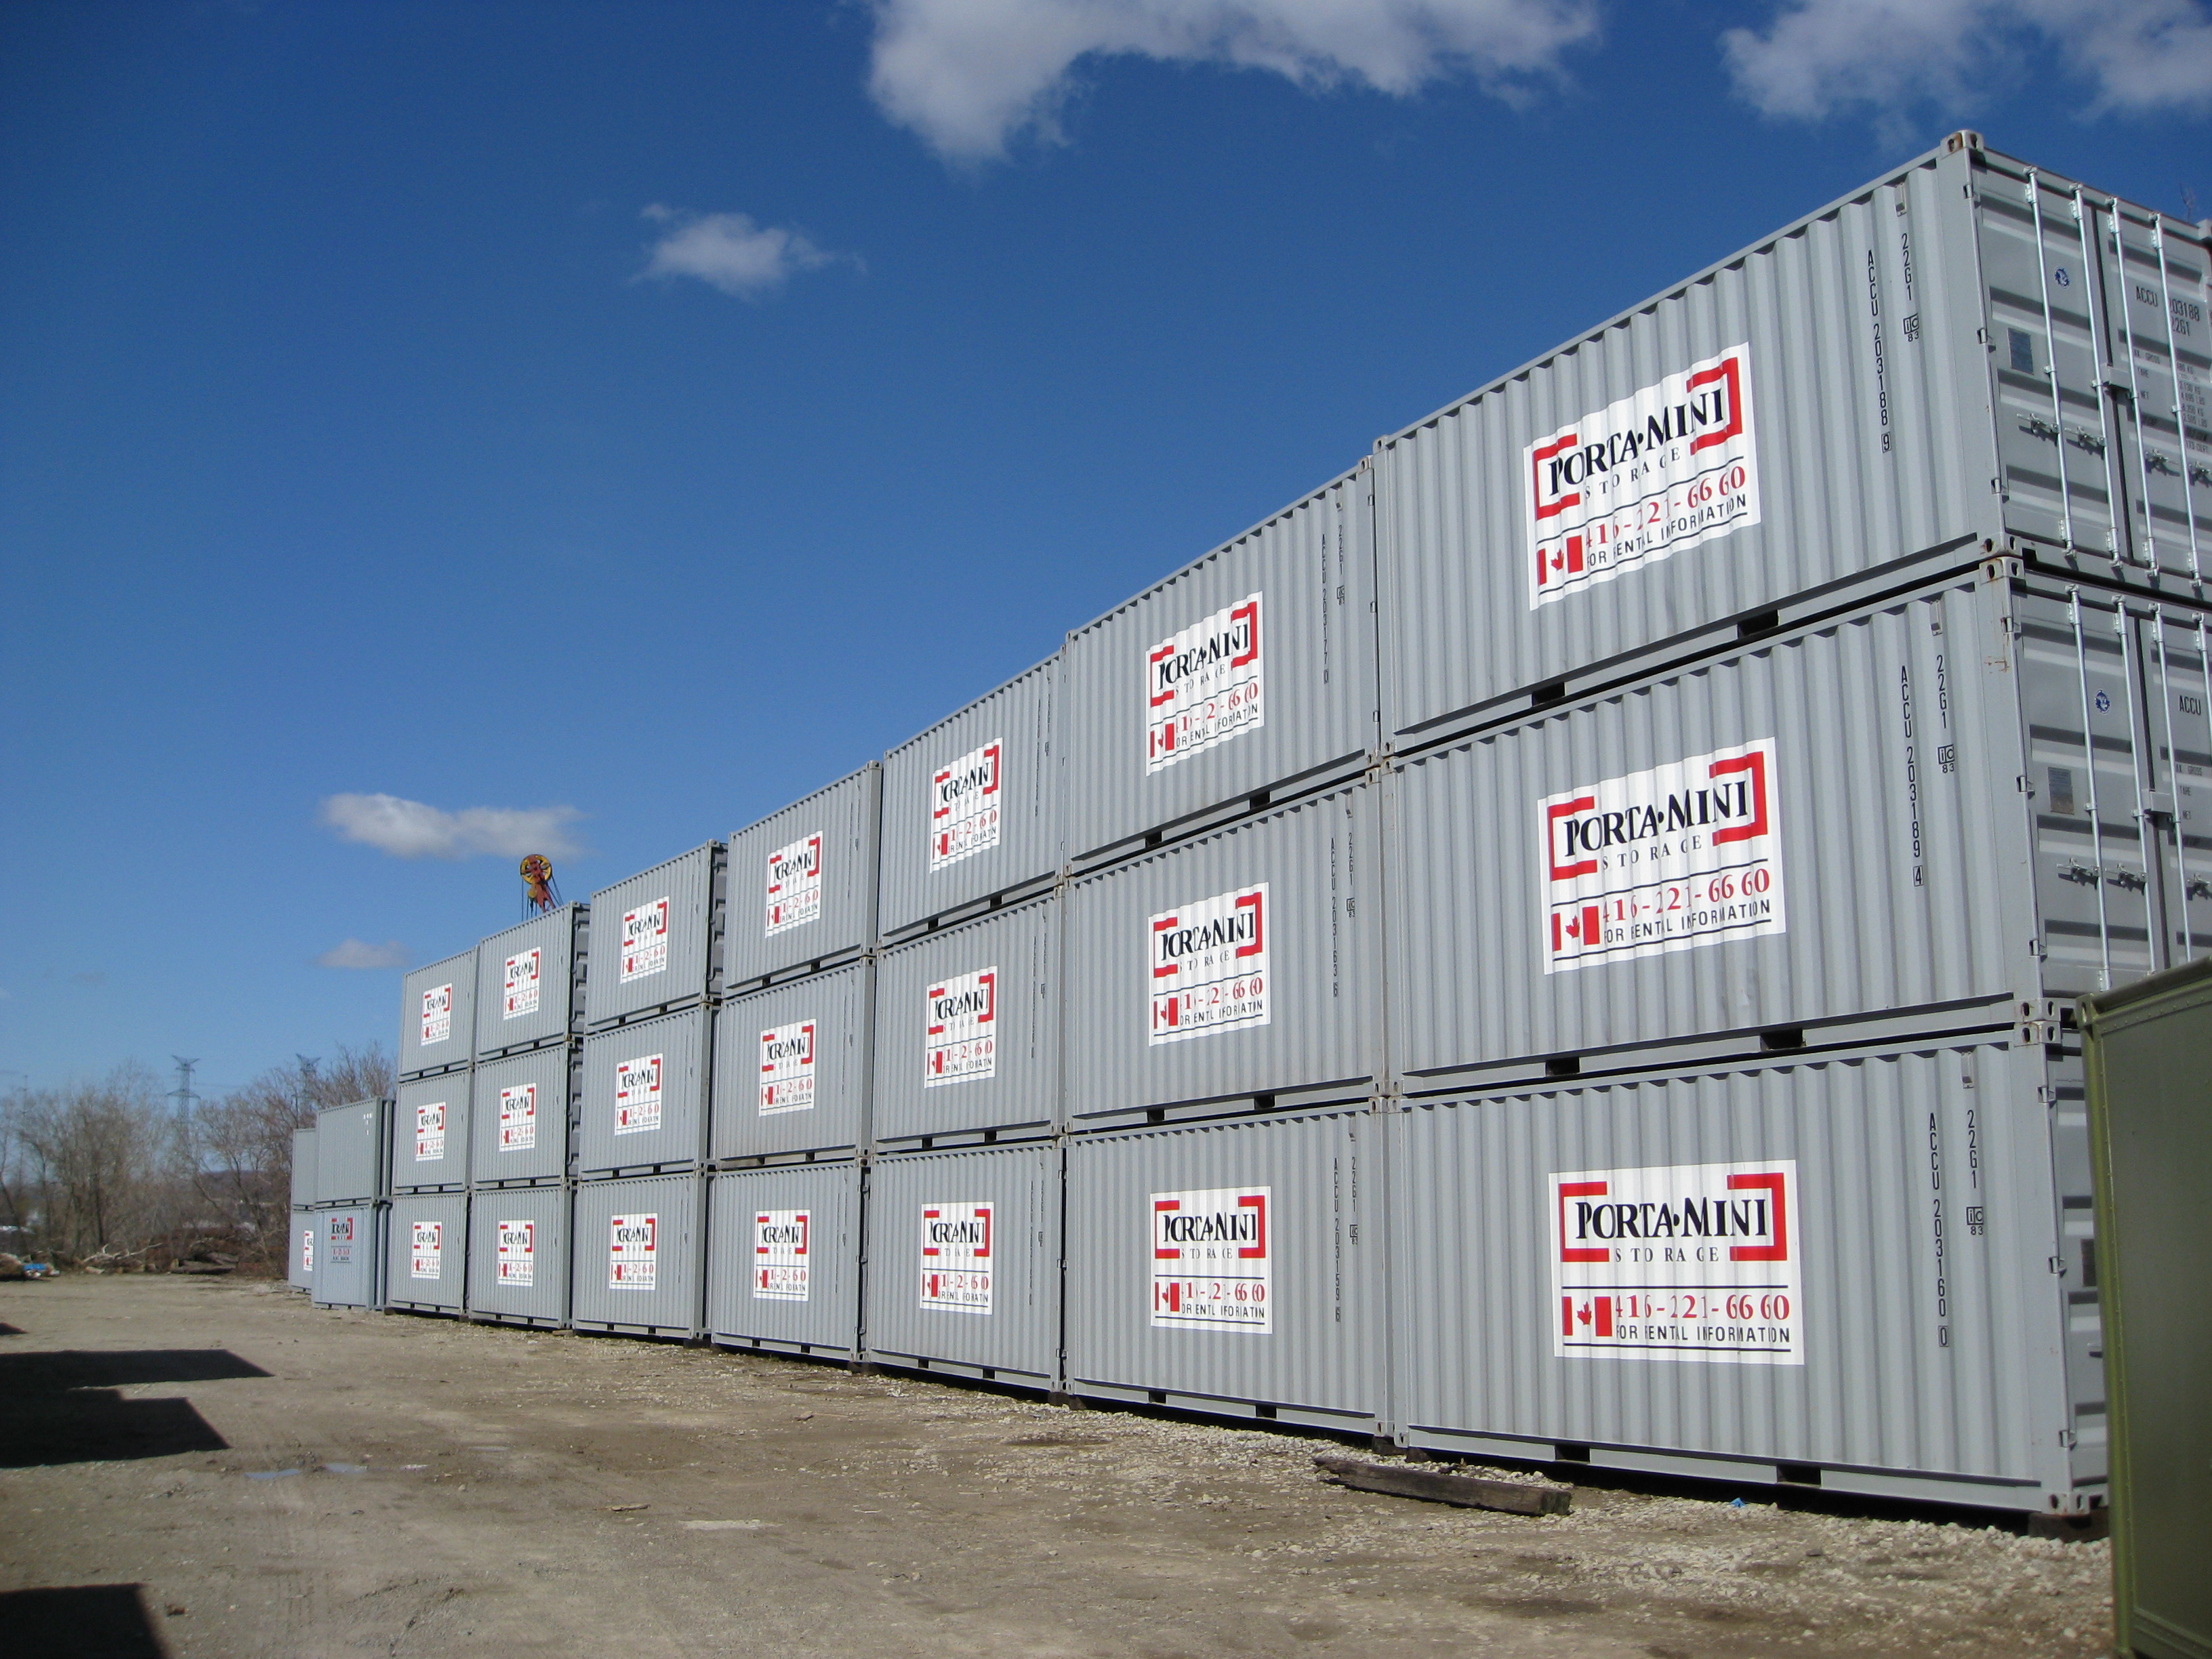 Portamini Storage Storage Containers Start Up Business